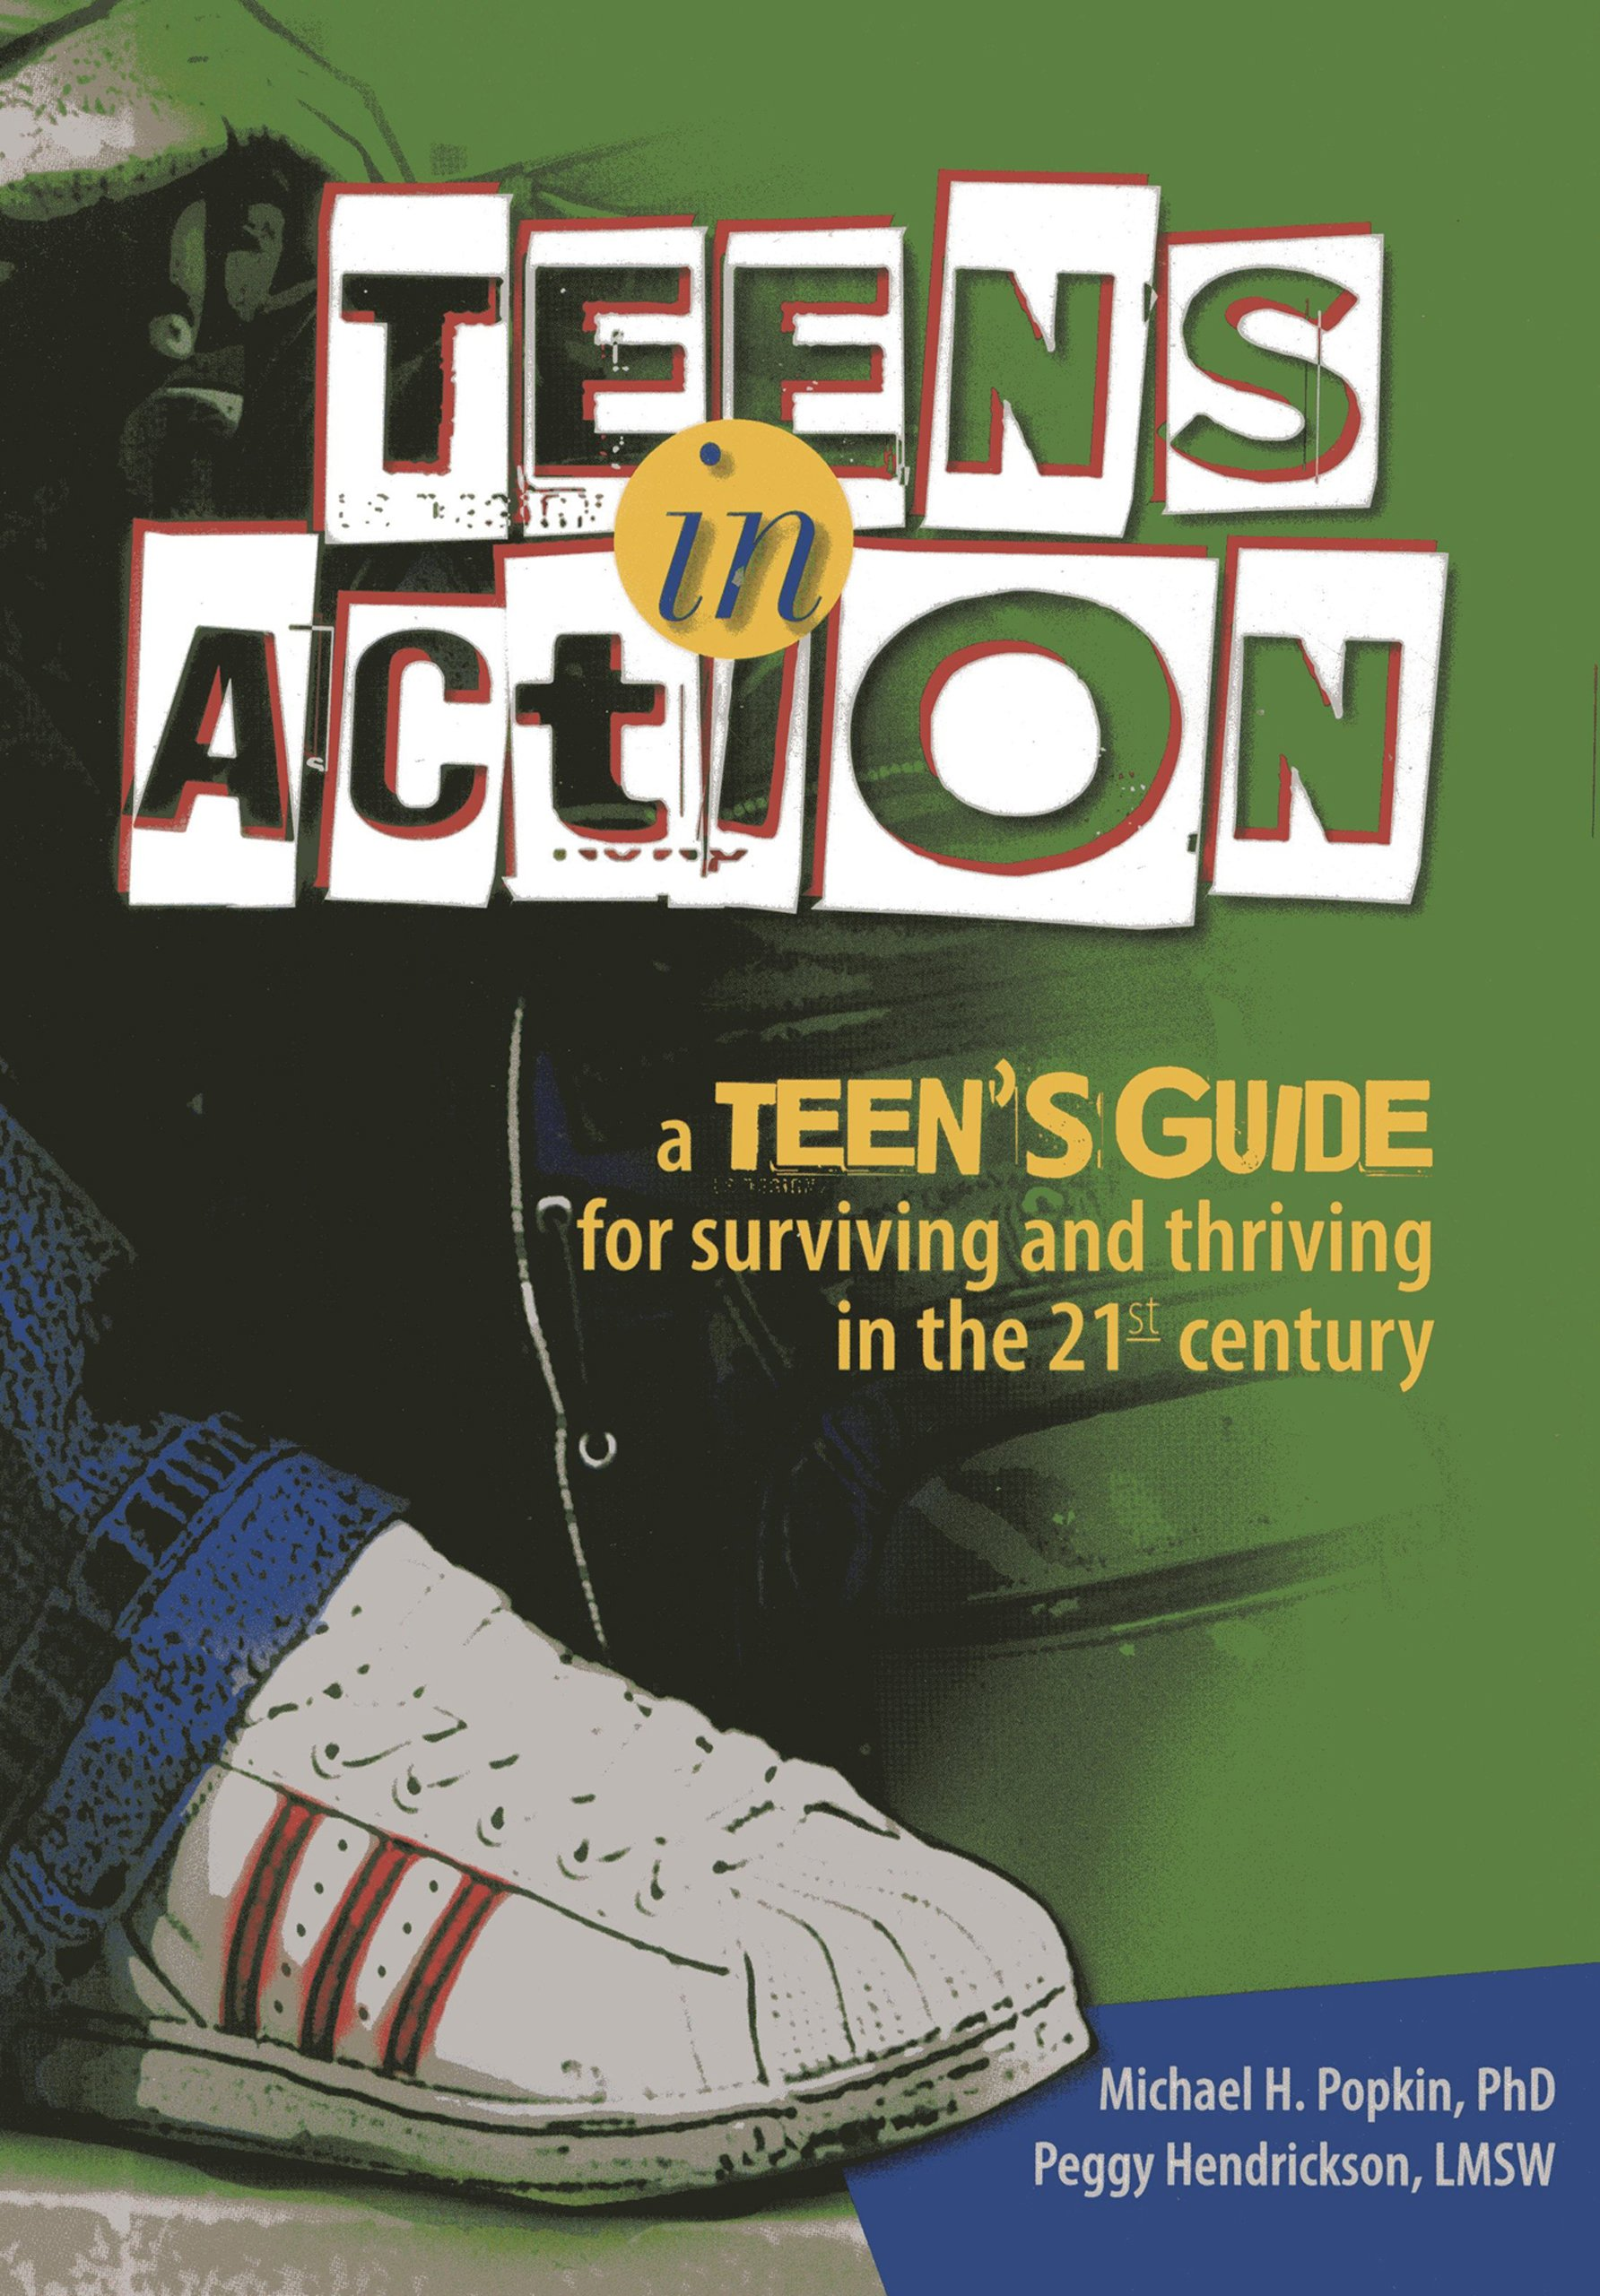 Teens in Action: A Teen's Guide for Surviving and Thriving in the 21st Century ebook